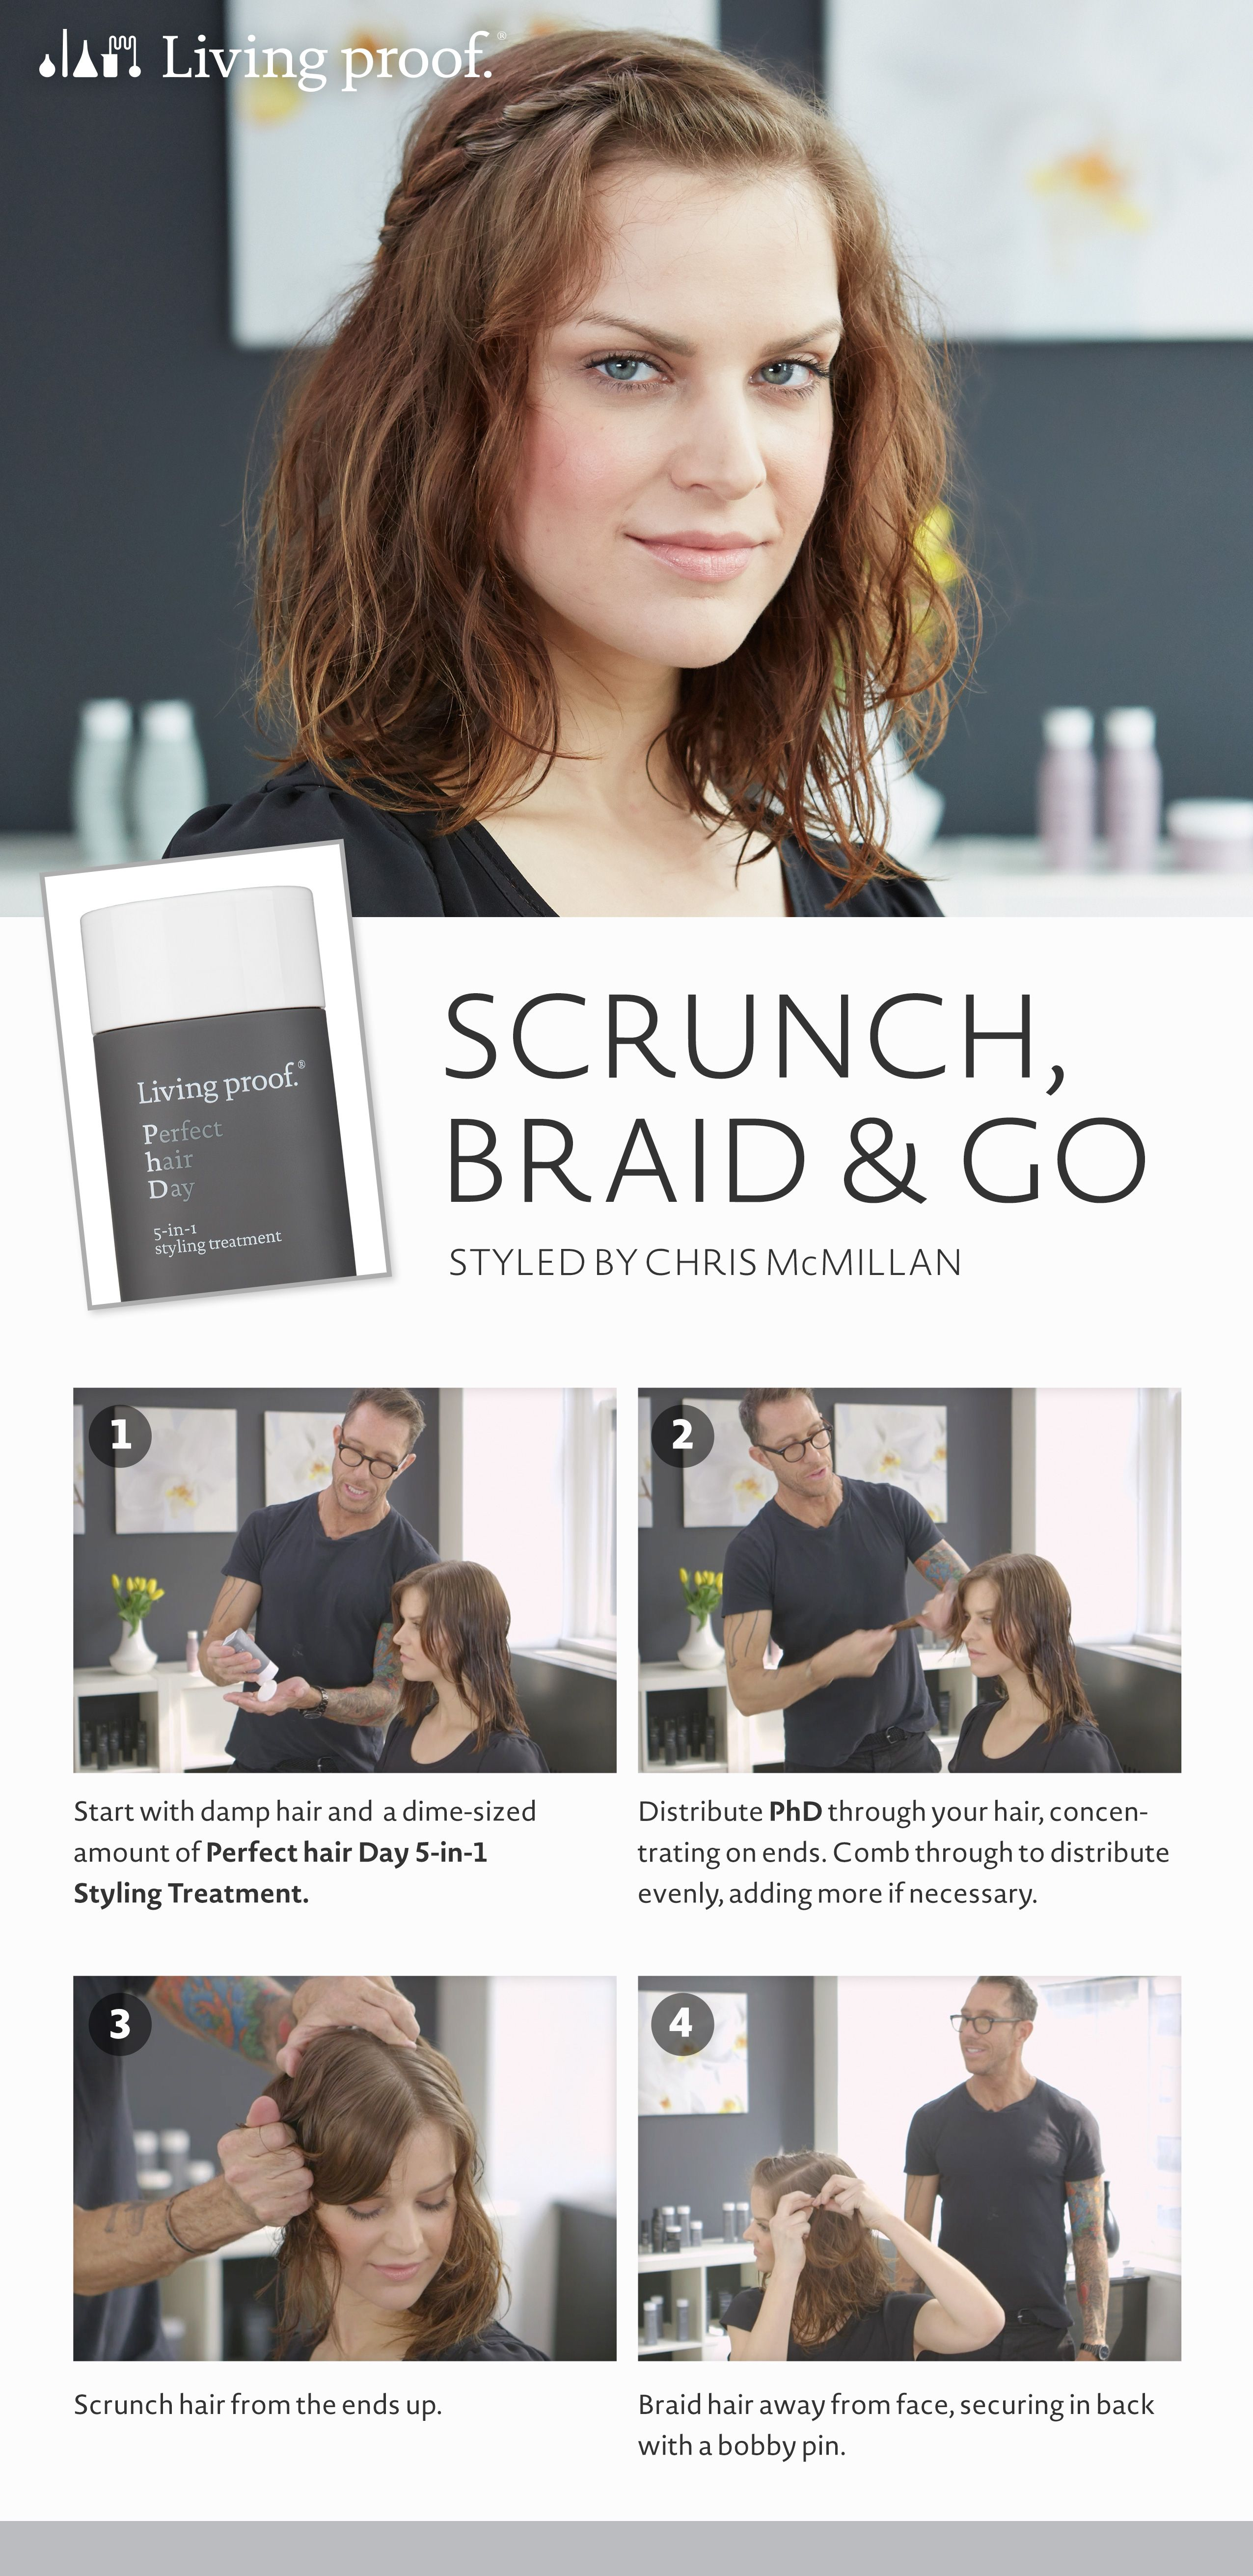 Here S A Quick Trick To Style Your Hair In Minutes When You Re On The Go Sephora Midlengthhair Braids Short Hair Styles Easy Hair Styles Perfect Hair Day